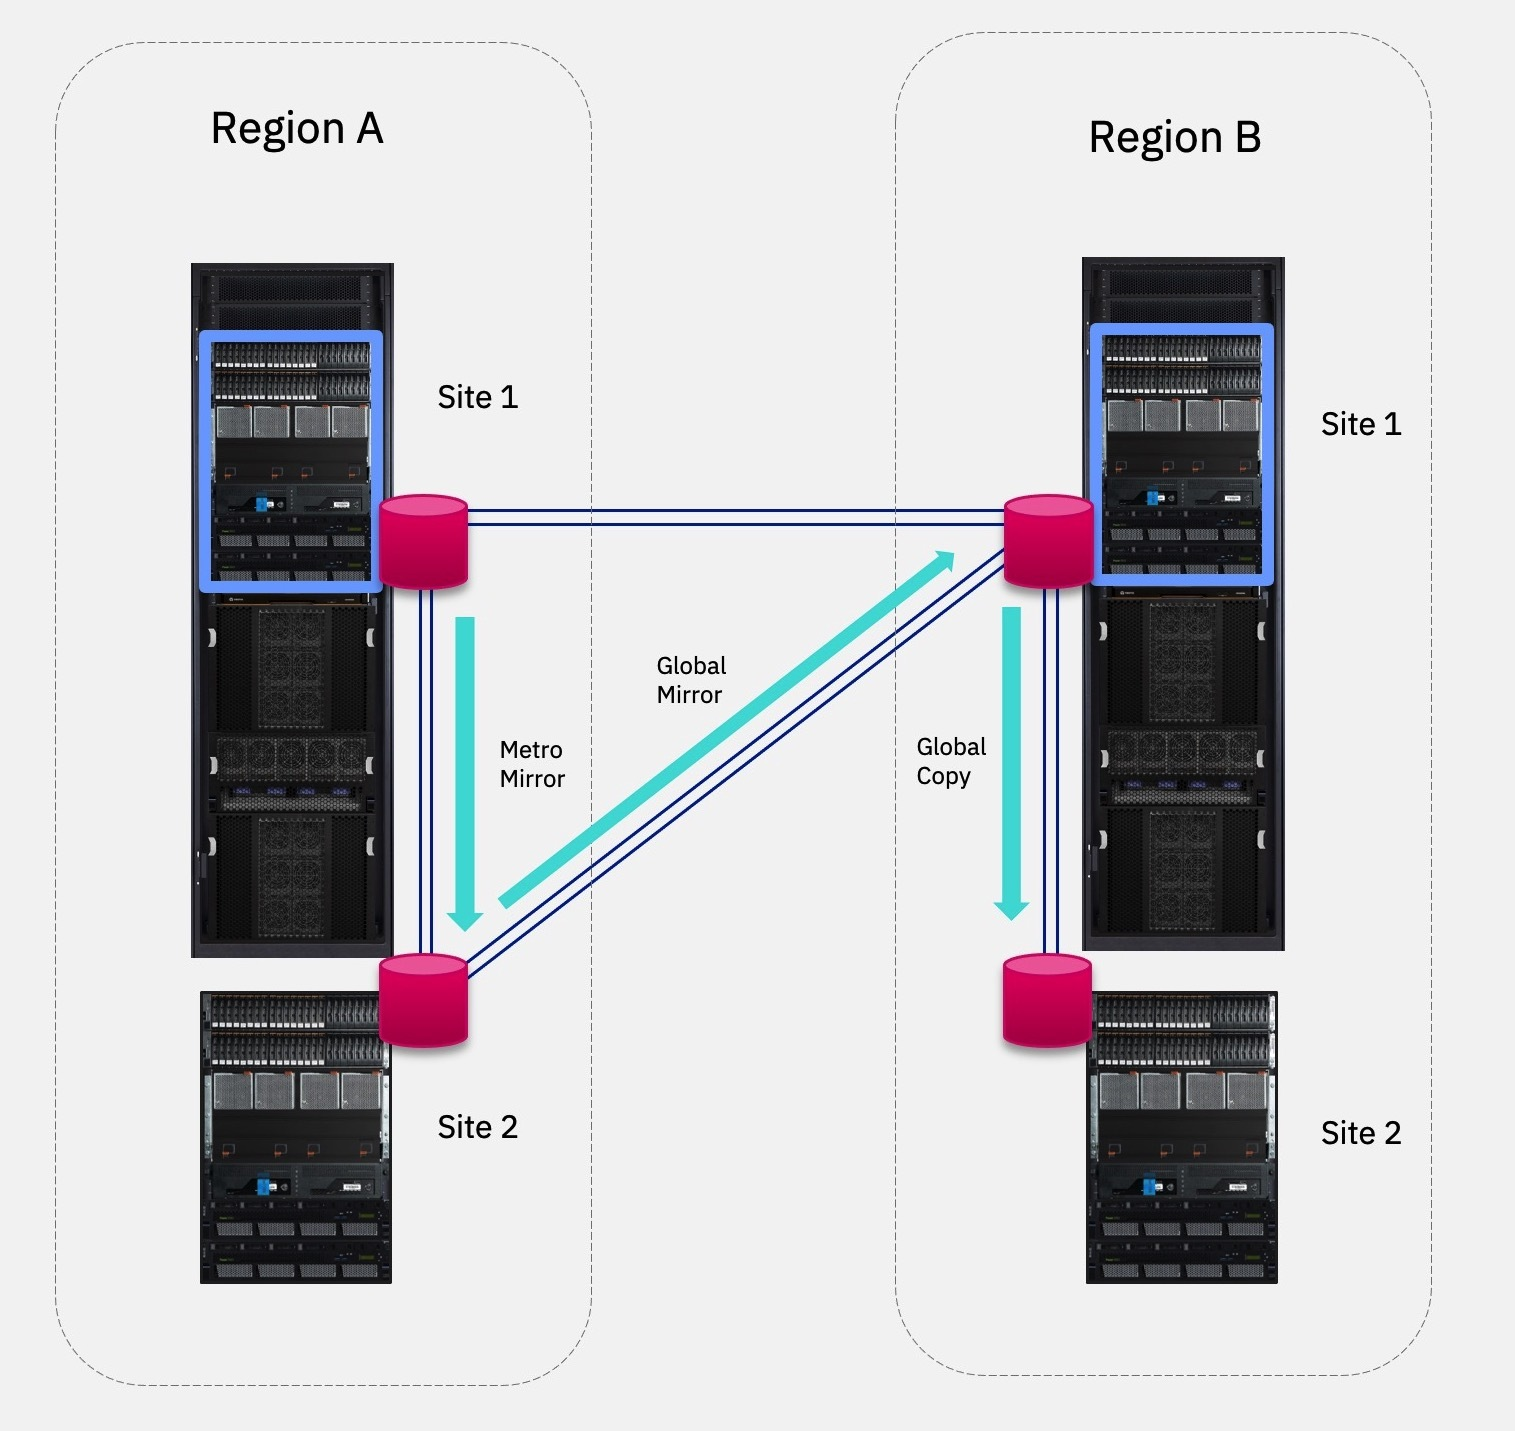 Mission-critical efficiency and resilience at a reduced IT cost